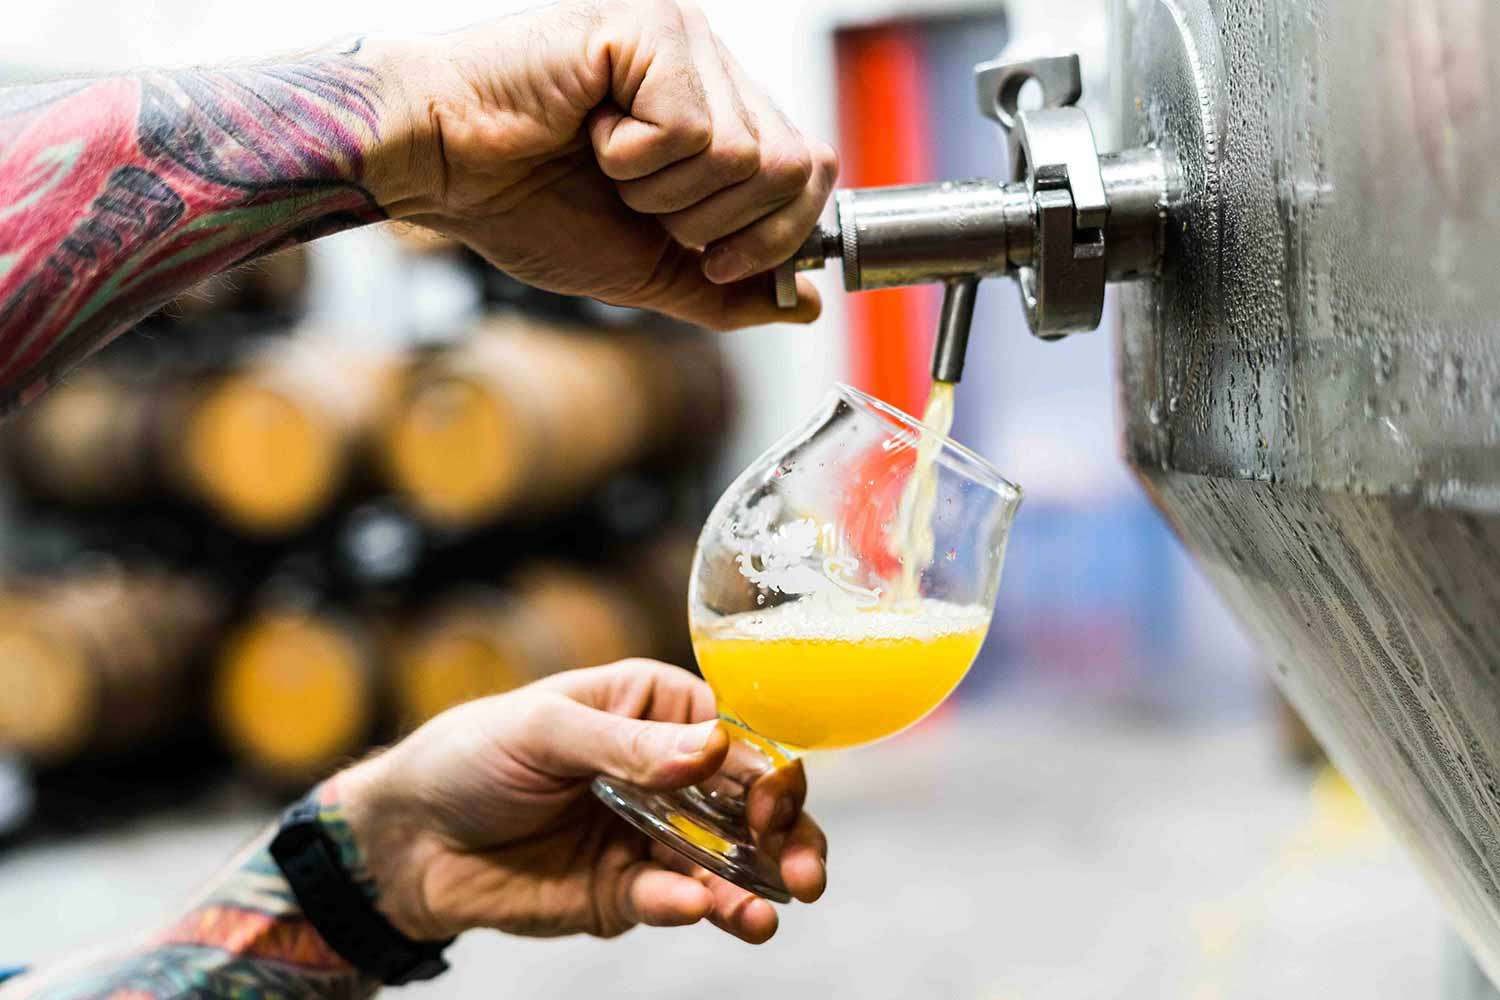 Craft Beer - What's all the fuss about?